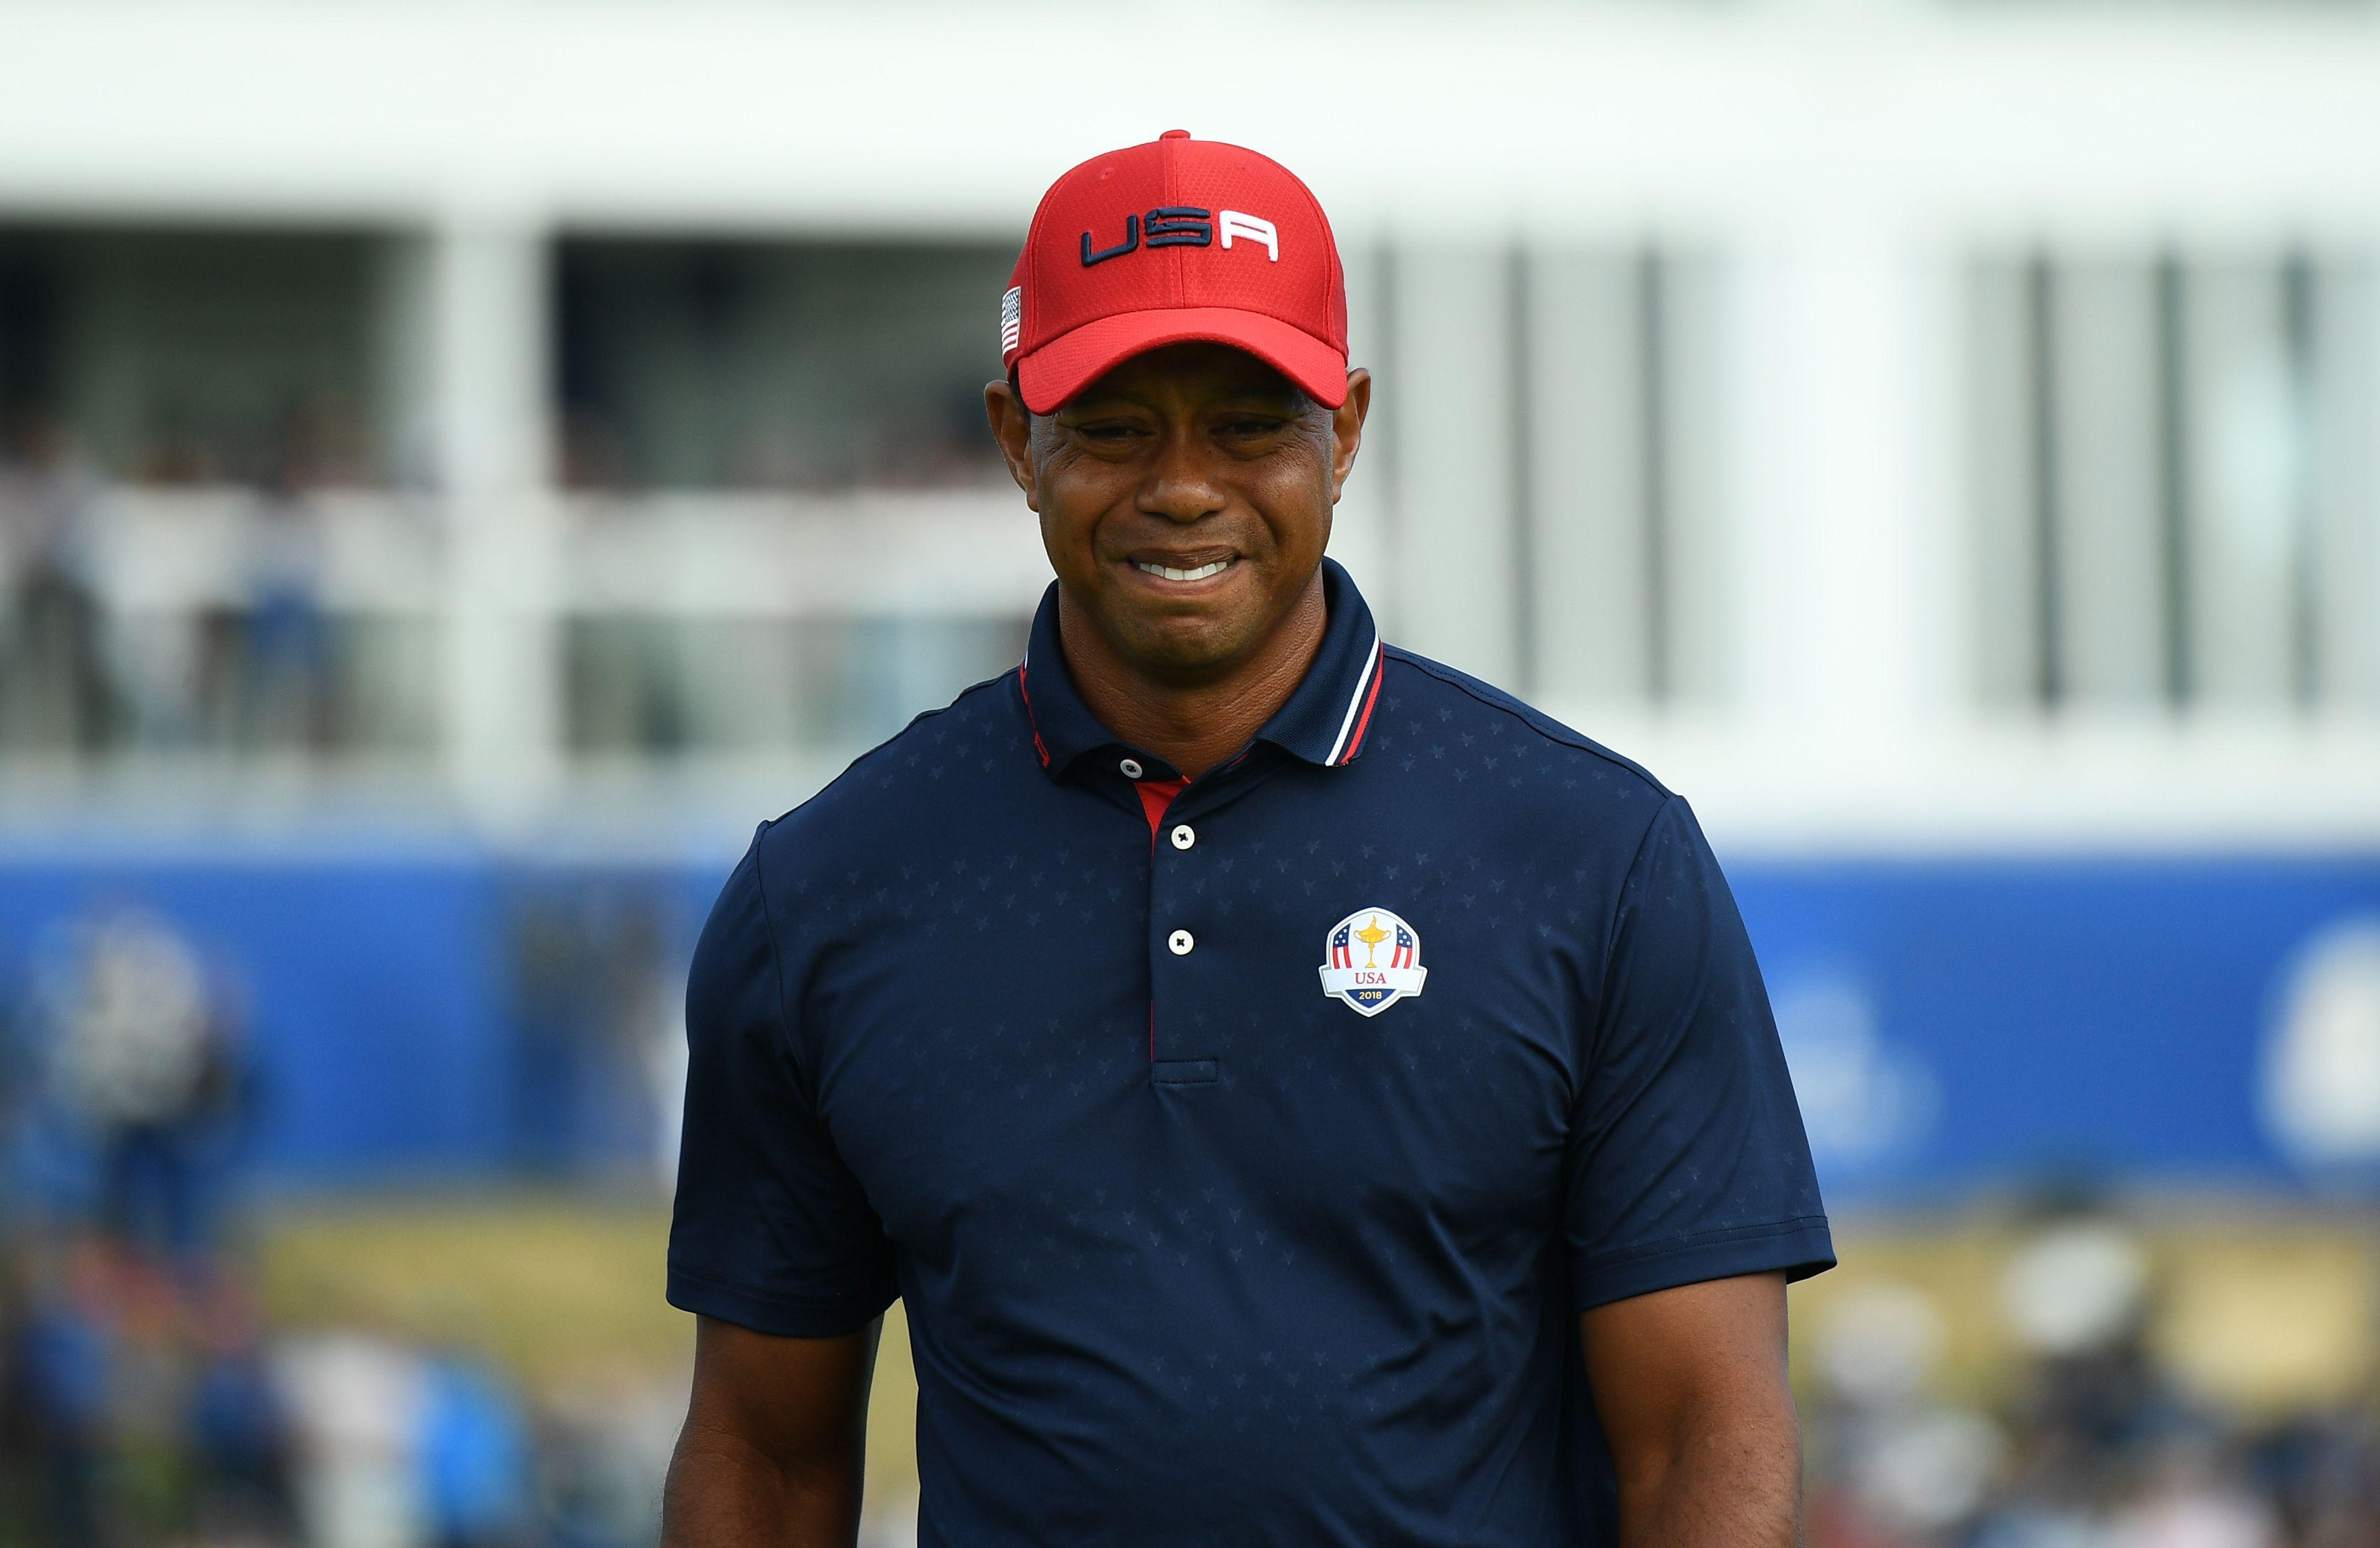 Woods wasn't at his best during the Ryder Cup